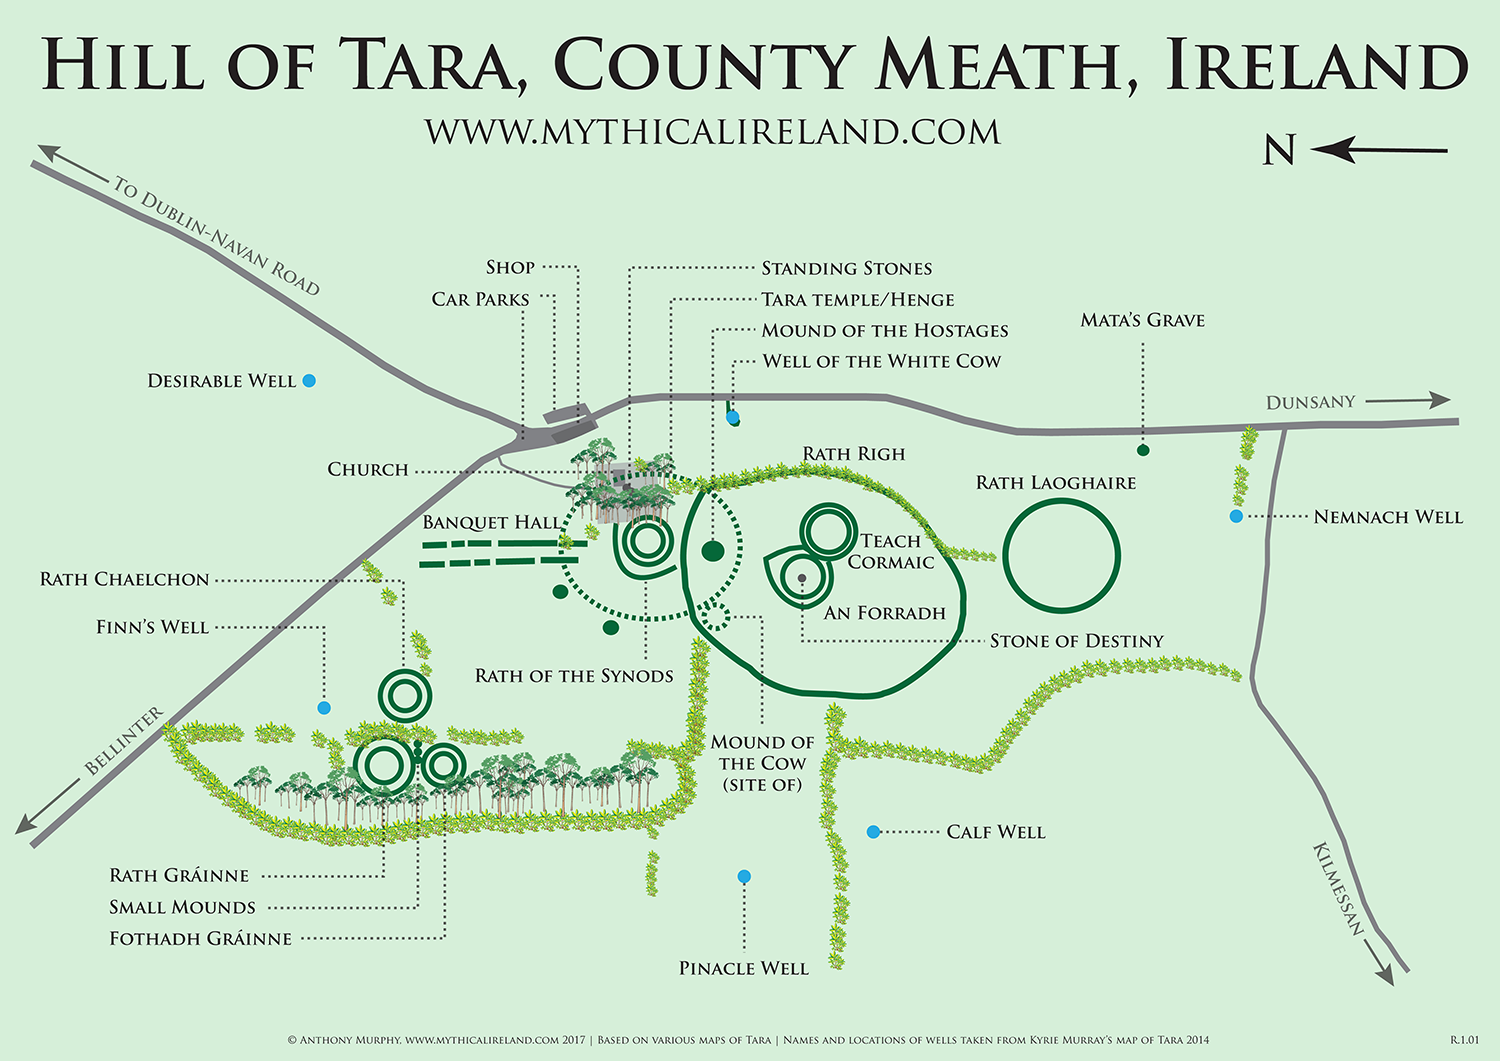 Mythical Ireland Ancient Sites The Hill Of Tara Teamhair